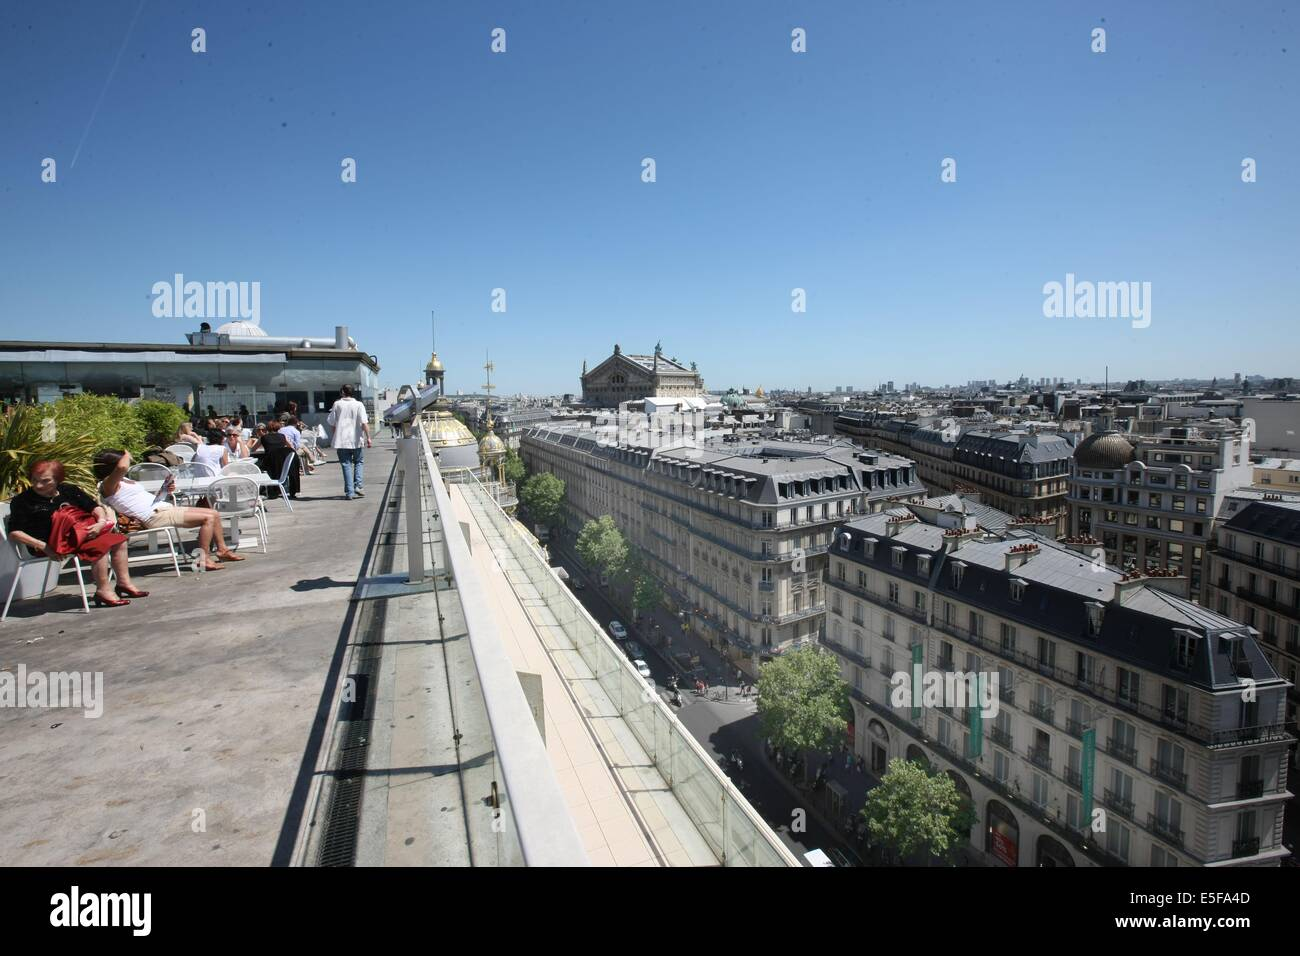 Restaurant Terrasse Paris 9 Printemps Paris Terrace Stockfotos And Printemps Paris